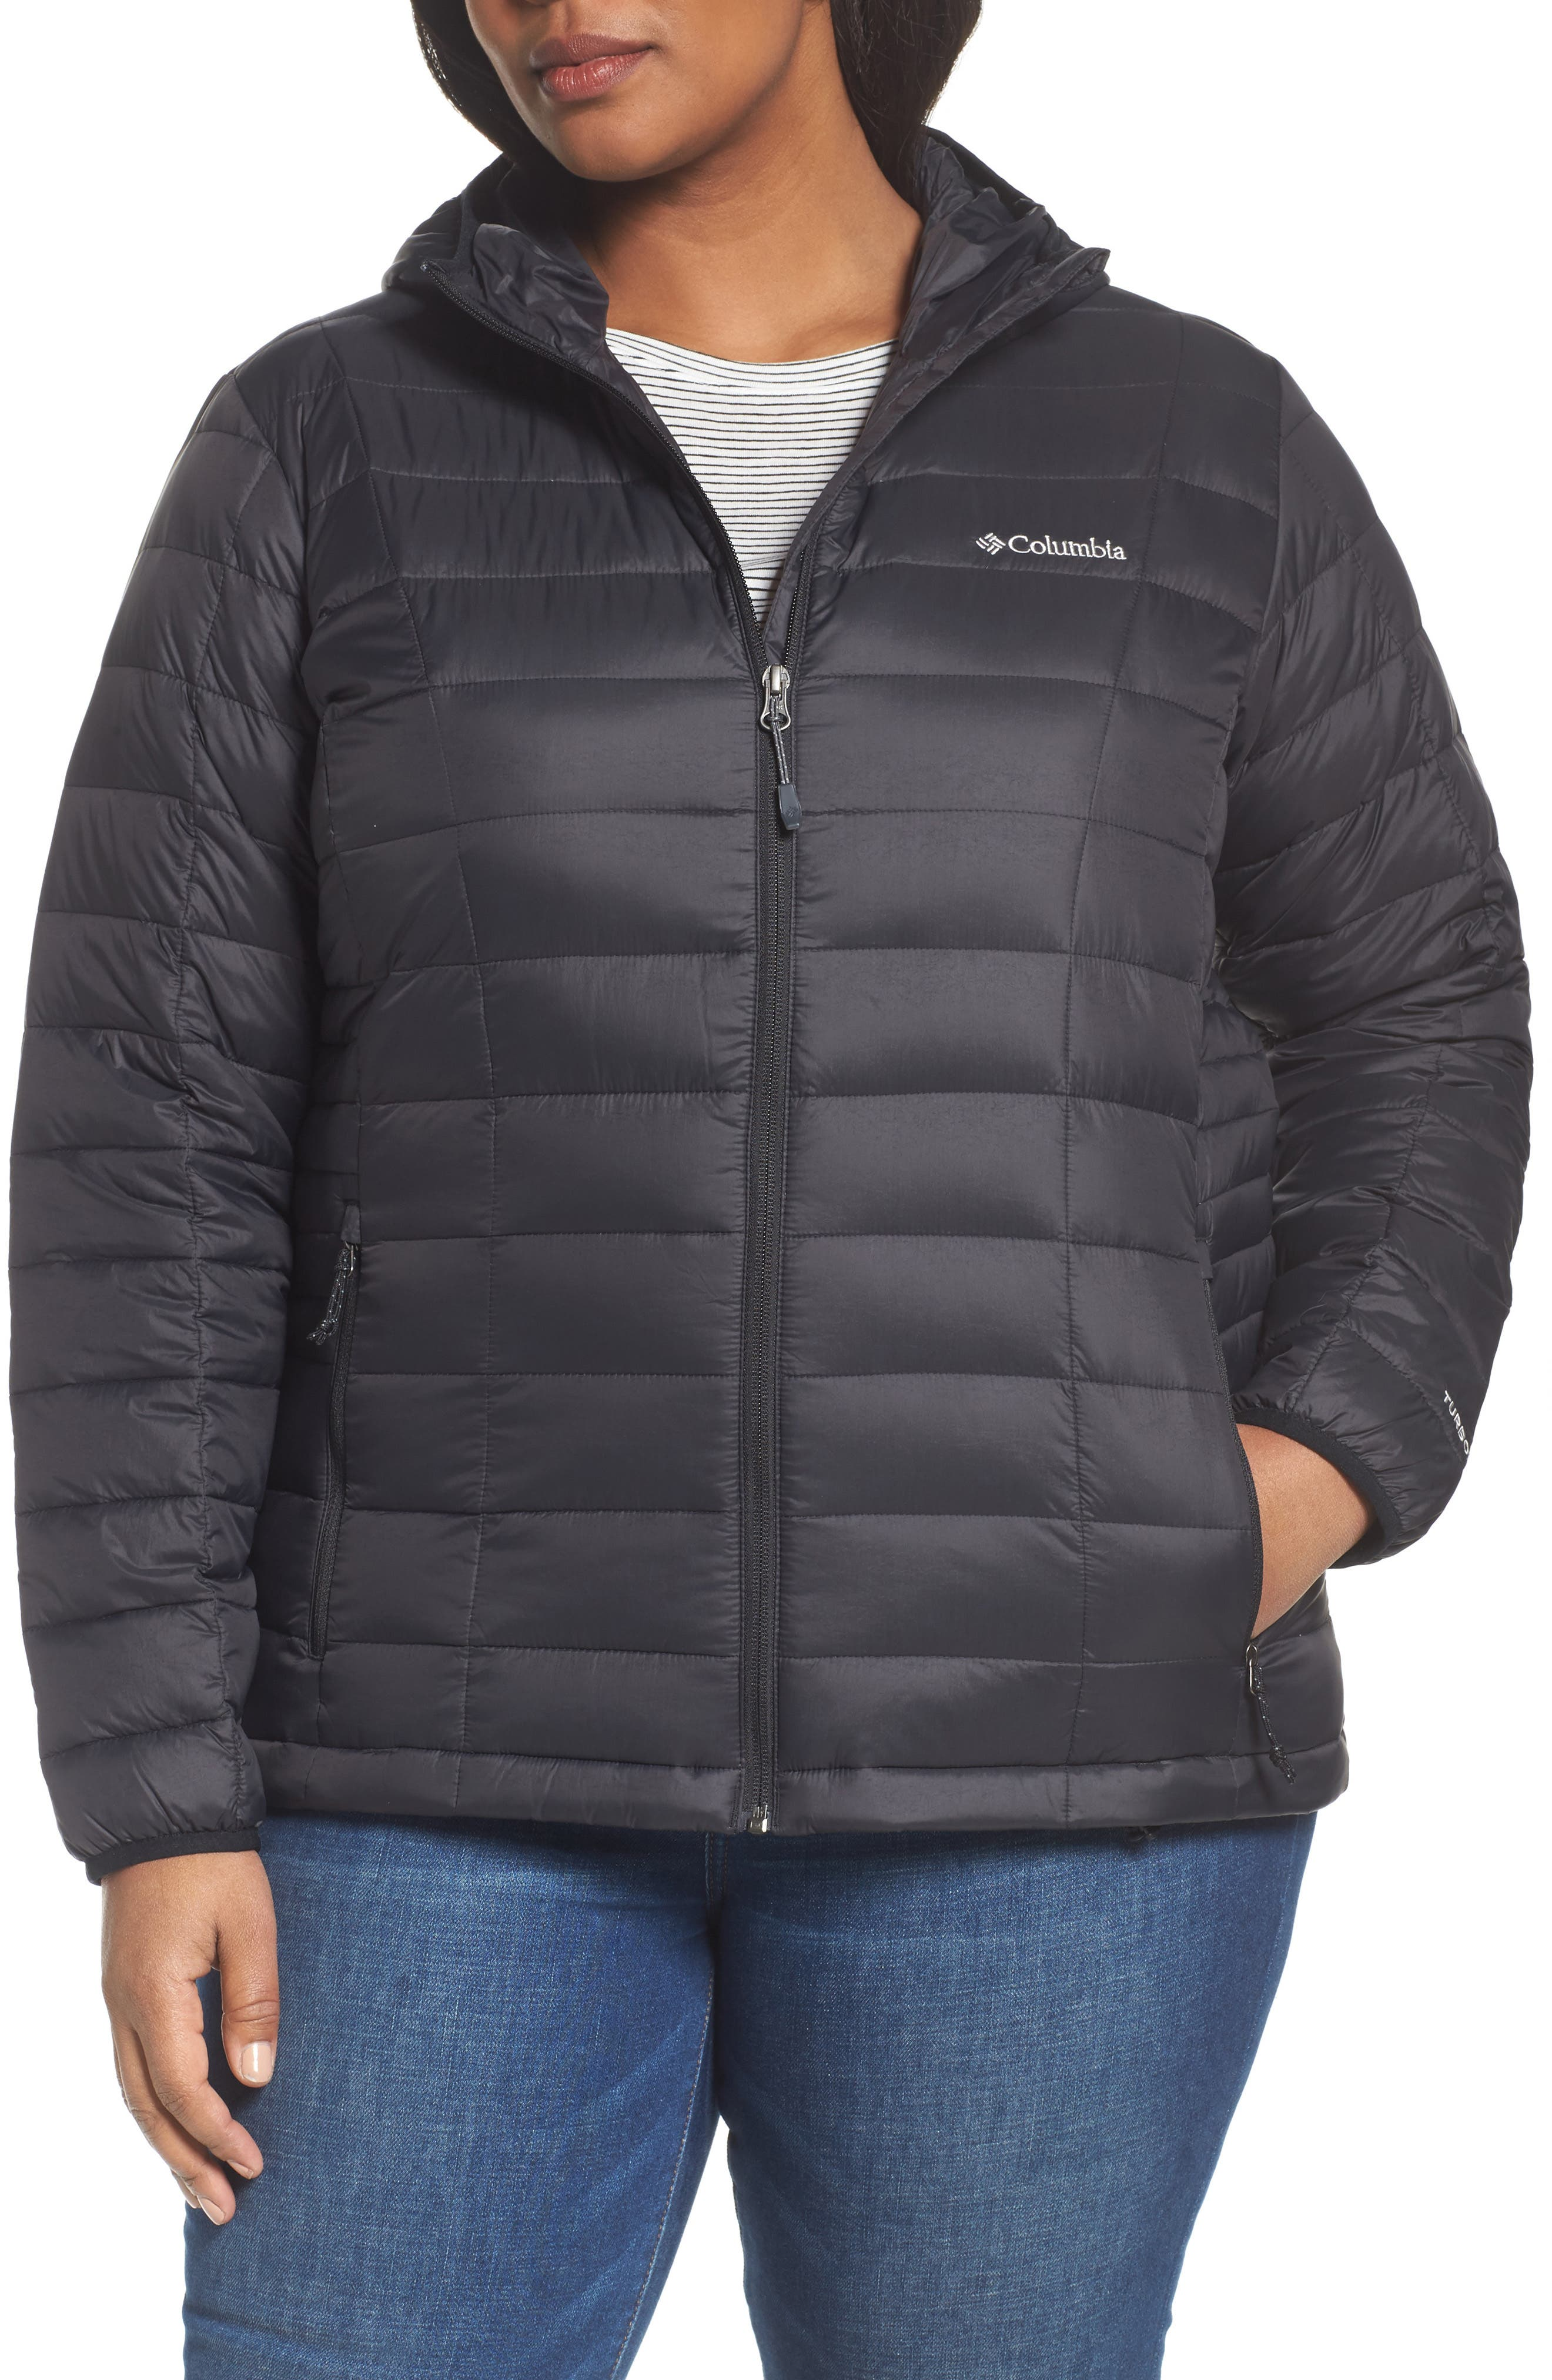 Voodoo Falls 590 Turbodown<sup>™</sup> Down Jacket,                             Alternate thumbnail 4, color,                             010